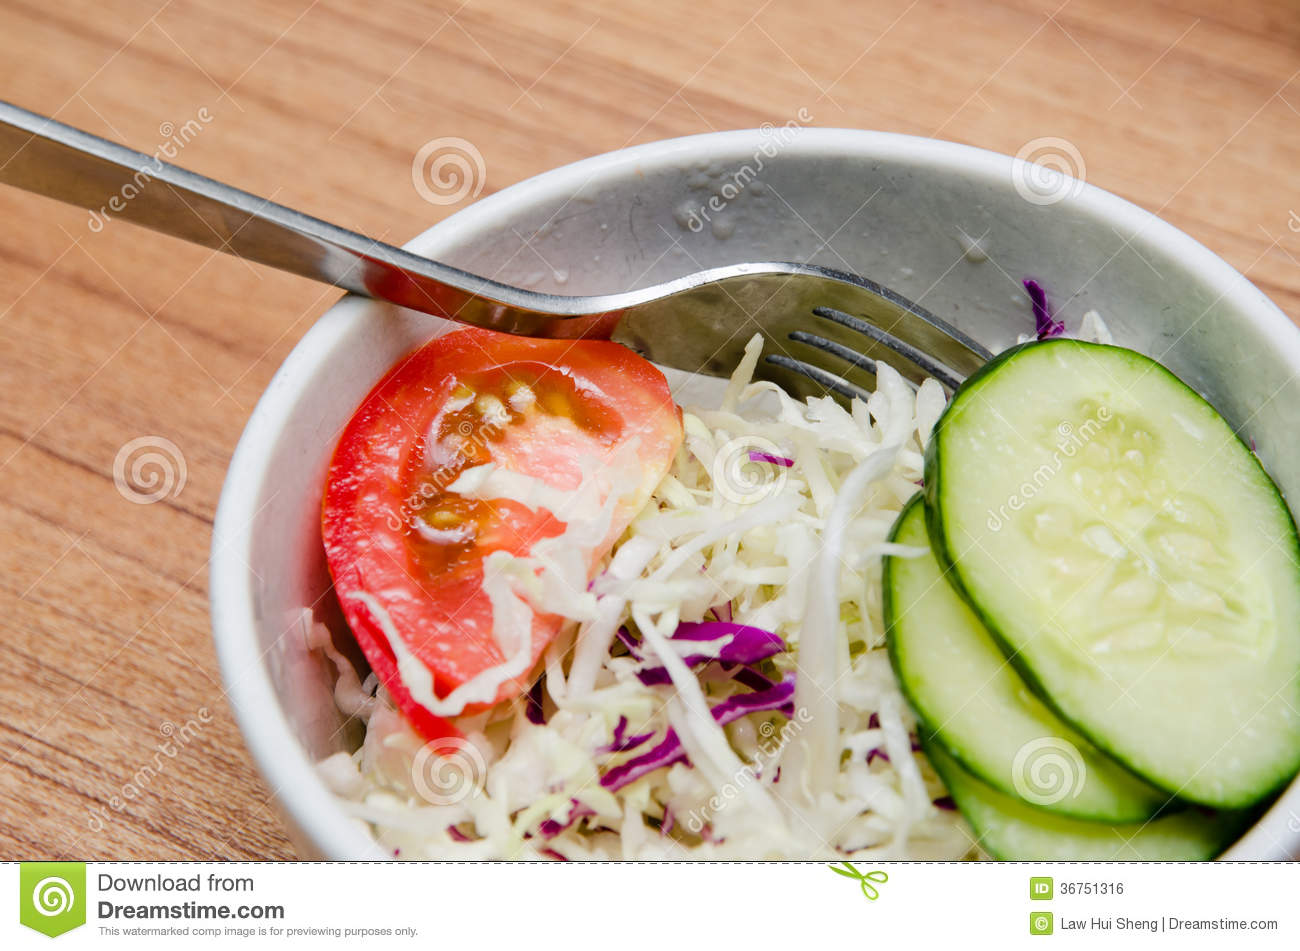 Tomato, cucumber and cabbage salad in a white bowl. By Law Hui Sheng .